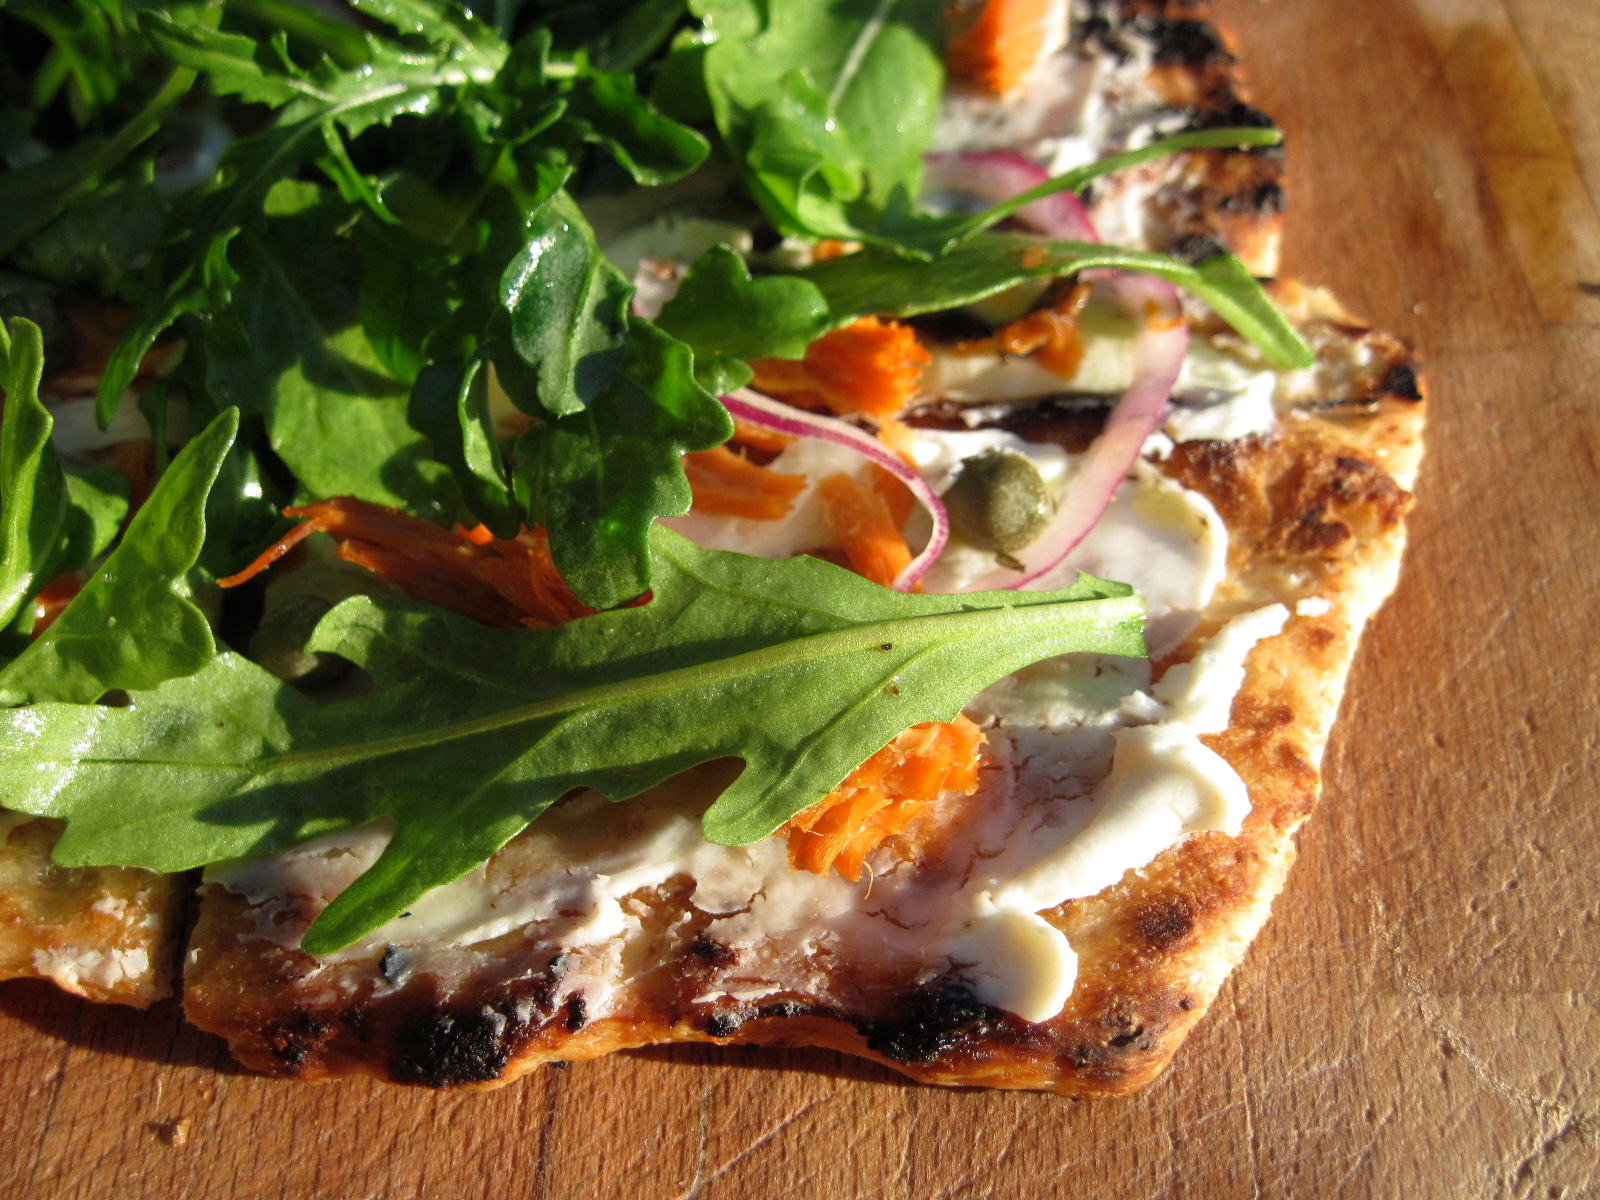 Grilled Pizza with Smoked Salmon, Goat Cheese & Arugula